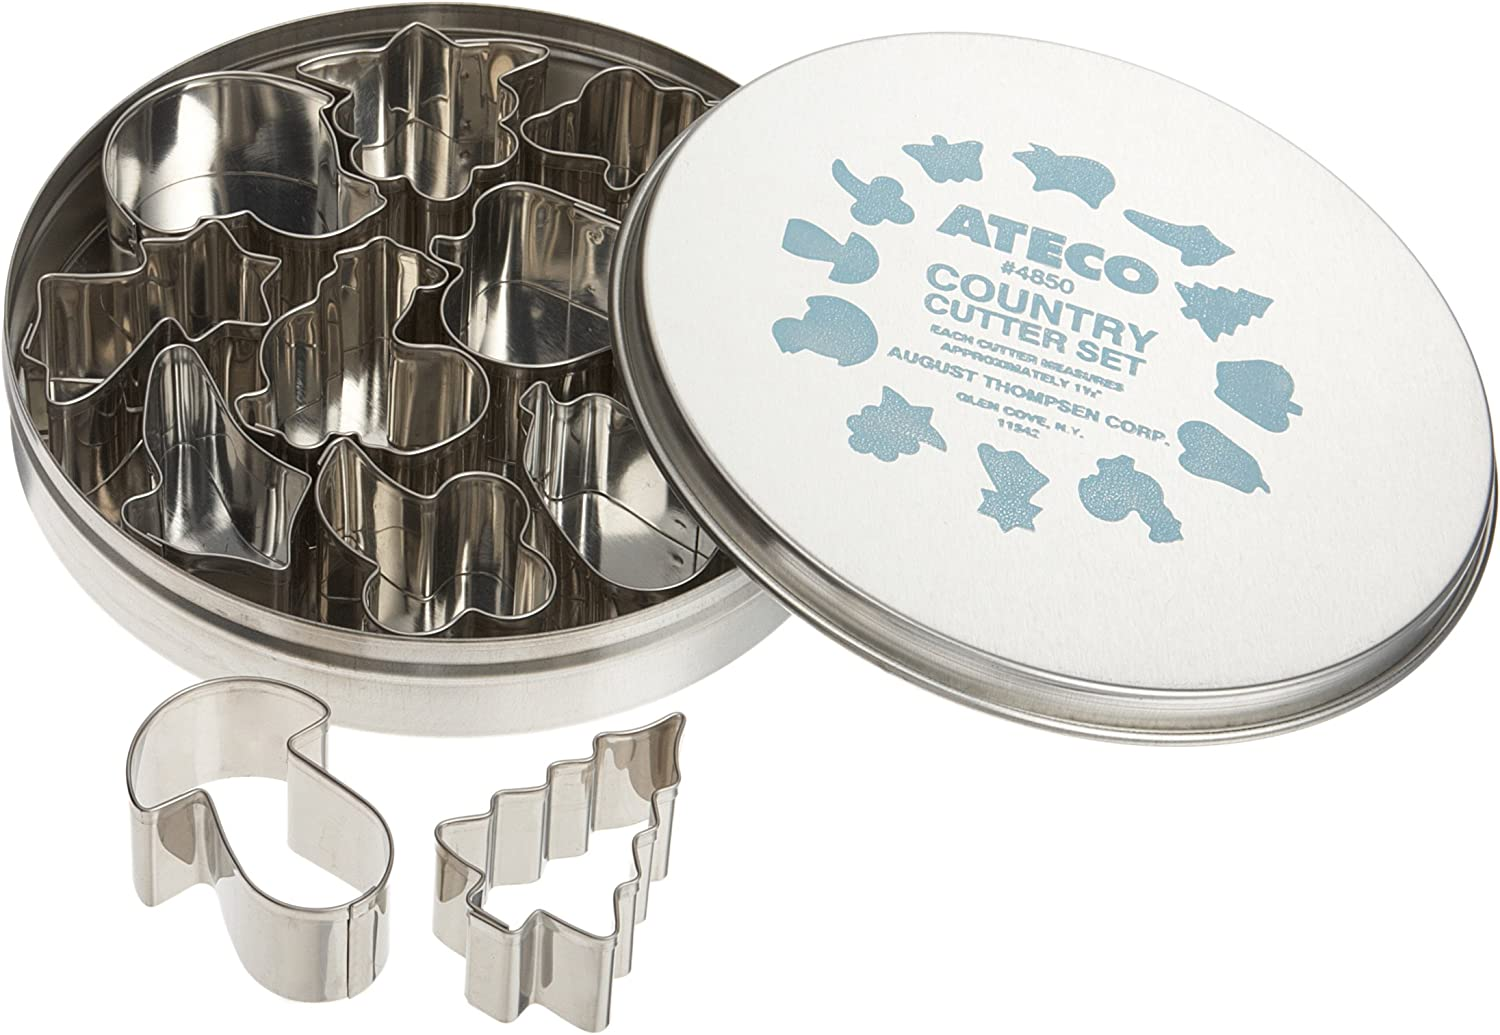 Ateco Plain Edge Country Life Cutters in Assorted Shapes, Stainless Steel, 12 Pc Set